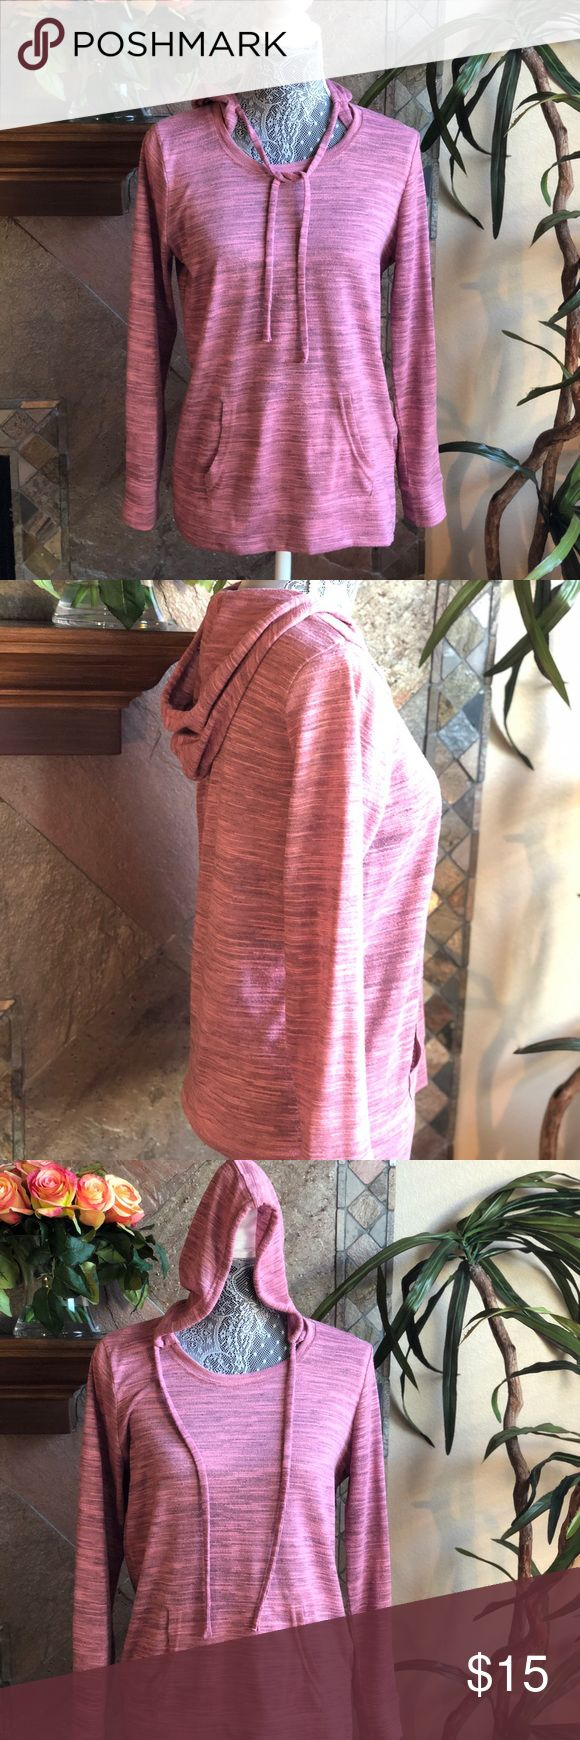 Nine West Vintage America Pink Hoodie Size Small Nine West Vintage America Collection Pink Hoodie.  Light weight attached hoodie sweatshirt. Long sleeve. Pocket across the front. Gently used- in great condition. No stains no rips detected. Comes from a smoke free home. Size Small. Nine West Sweaters Crew & Scoop Necks